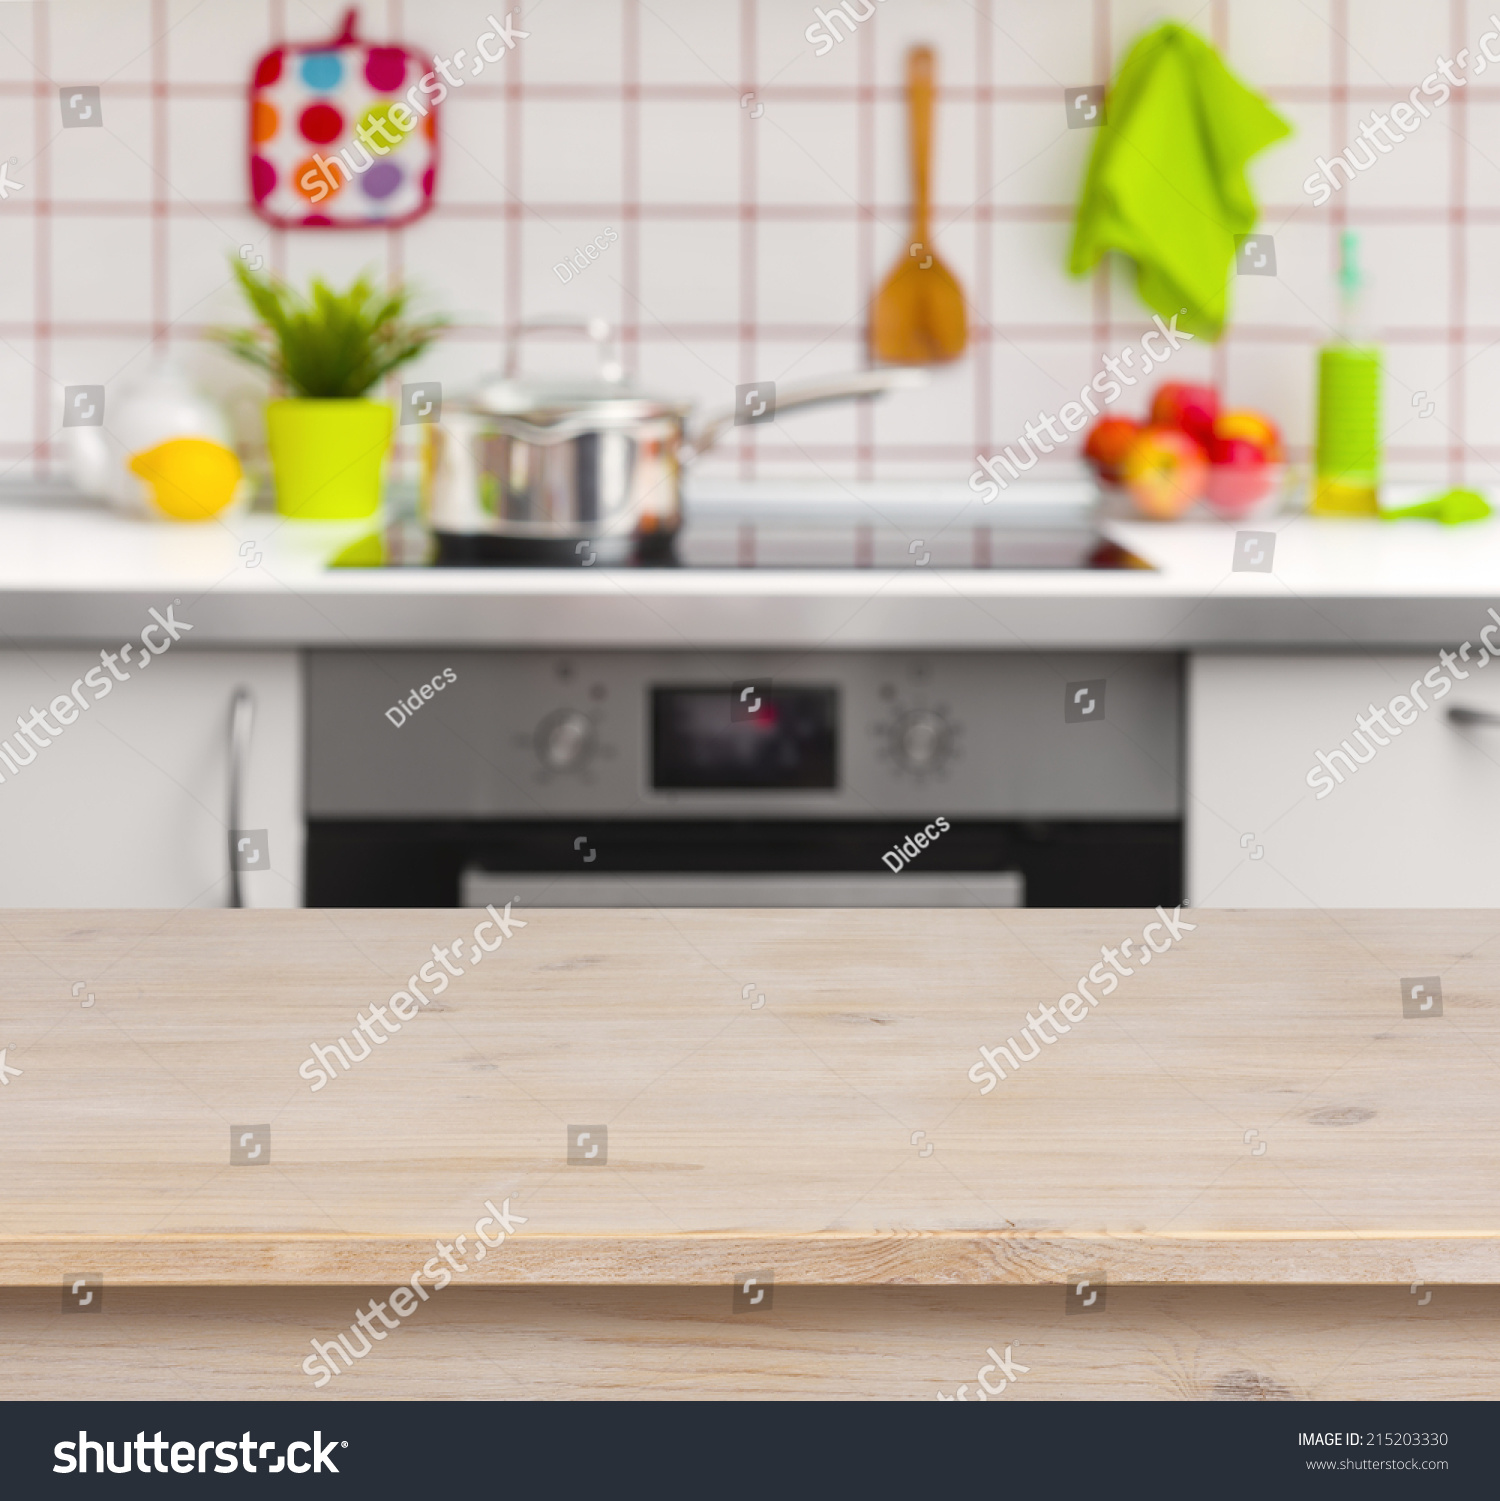 Wooden Table Blurred Kitchen Bench Stock